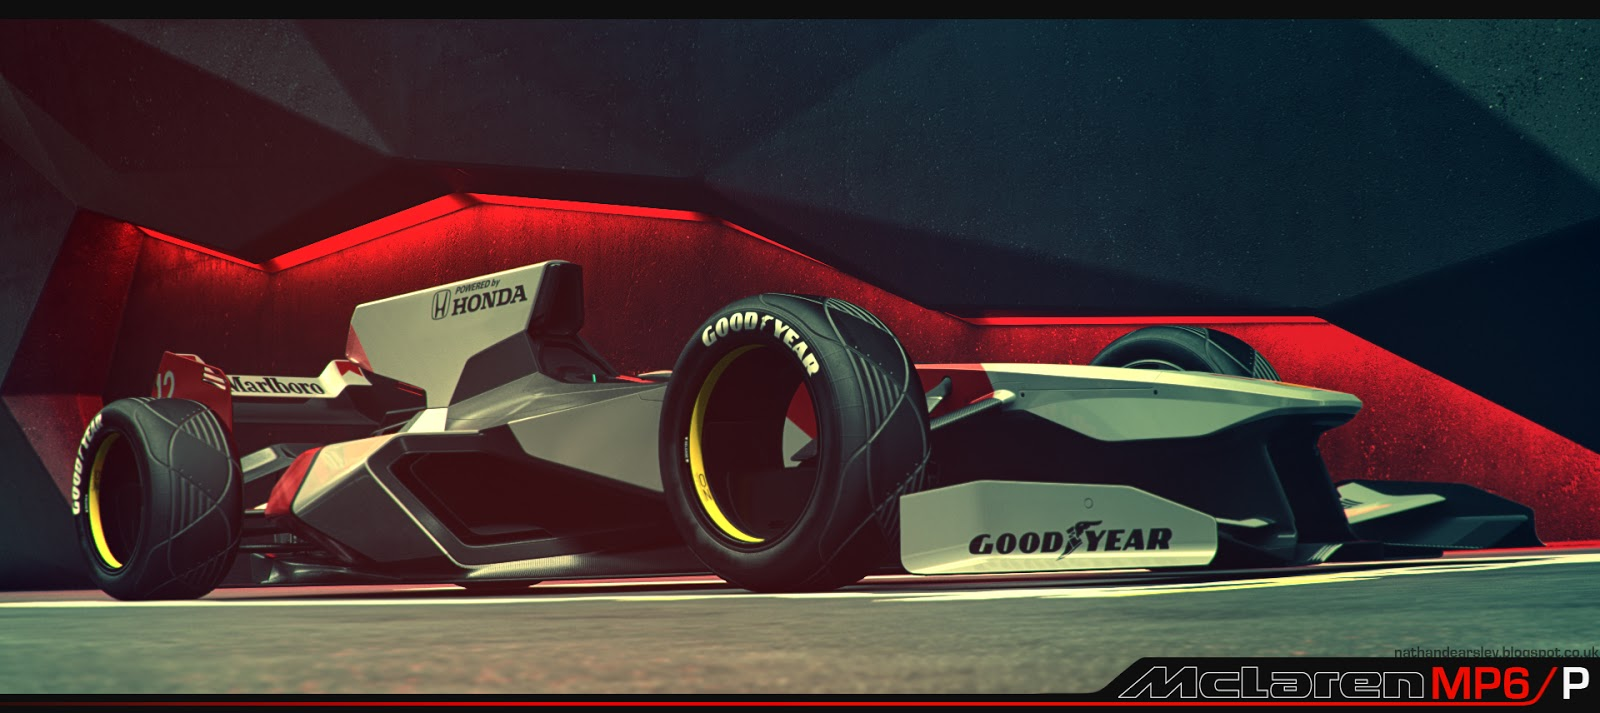 2056 Formula One car rendered